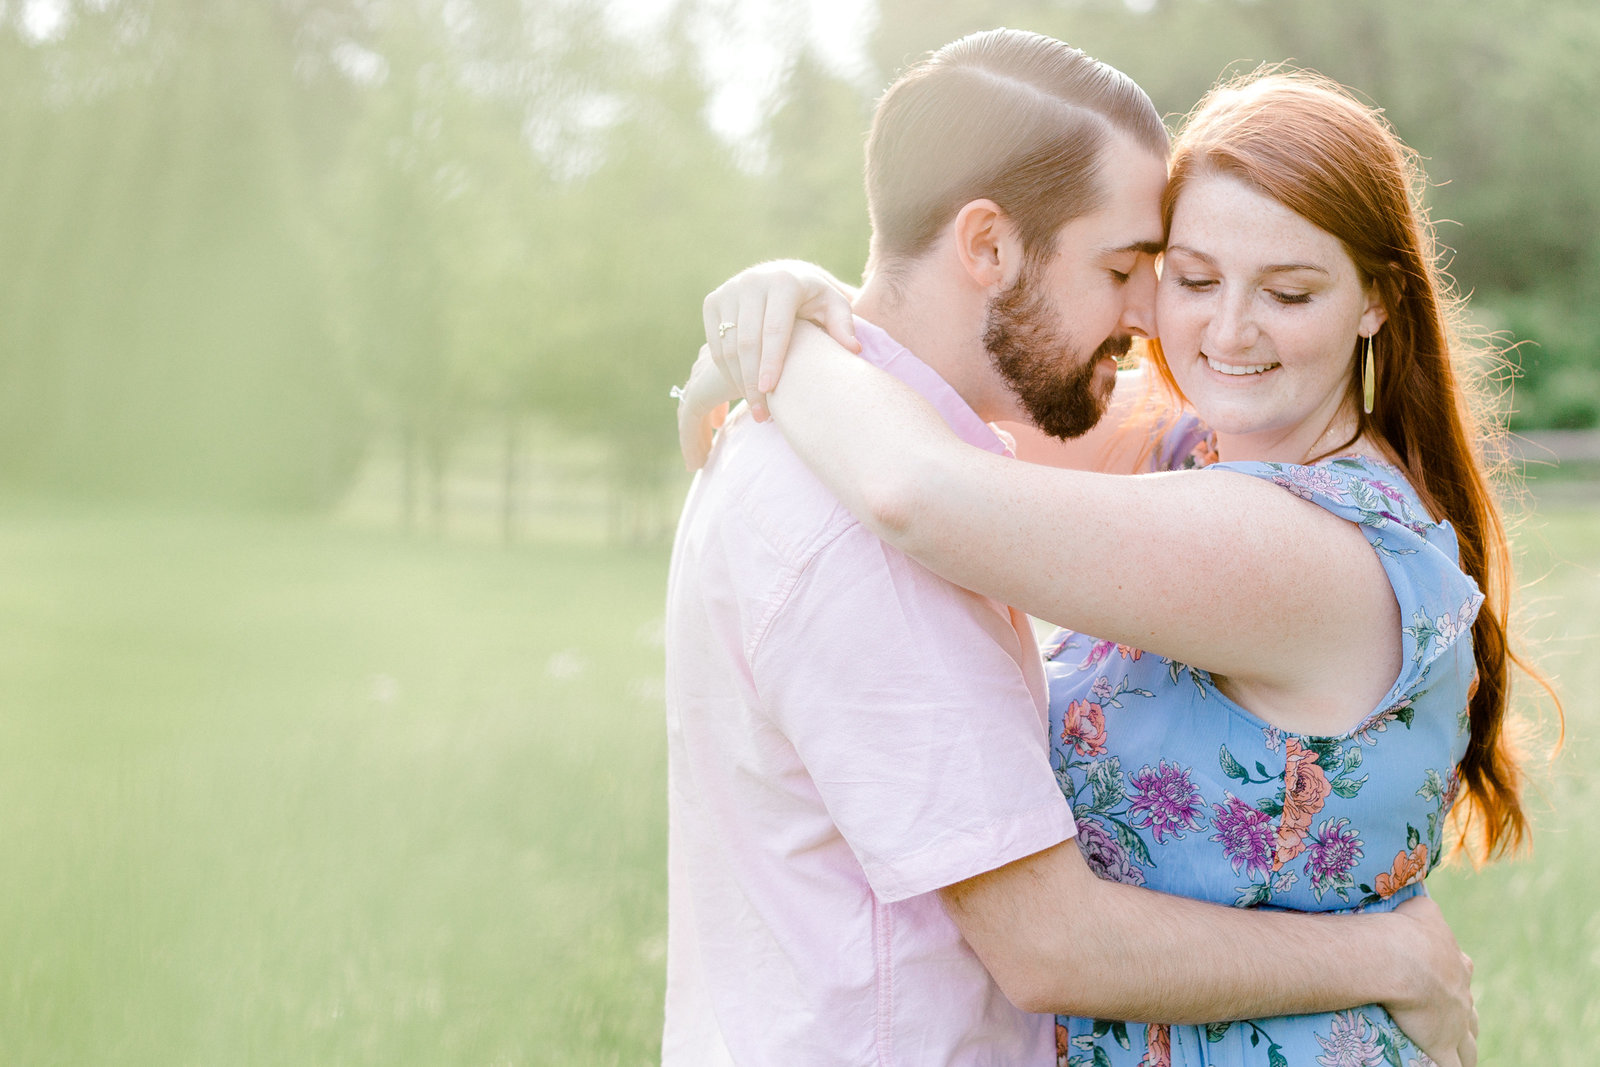 Manor house at prophecy Creek Blue Bell PA wedding venue summertime field engagement session lehigh valley based wedding and lifestyle photographer (72 of 108)